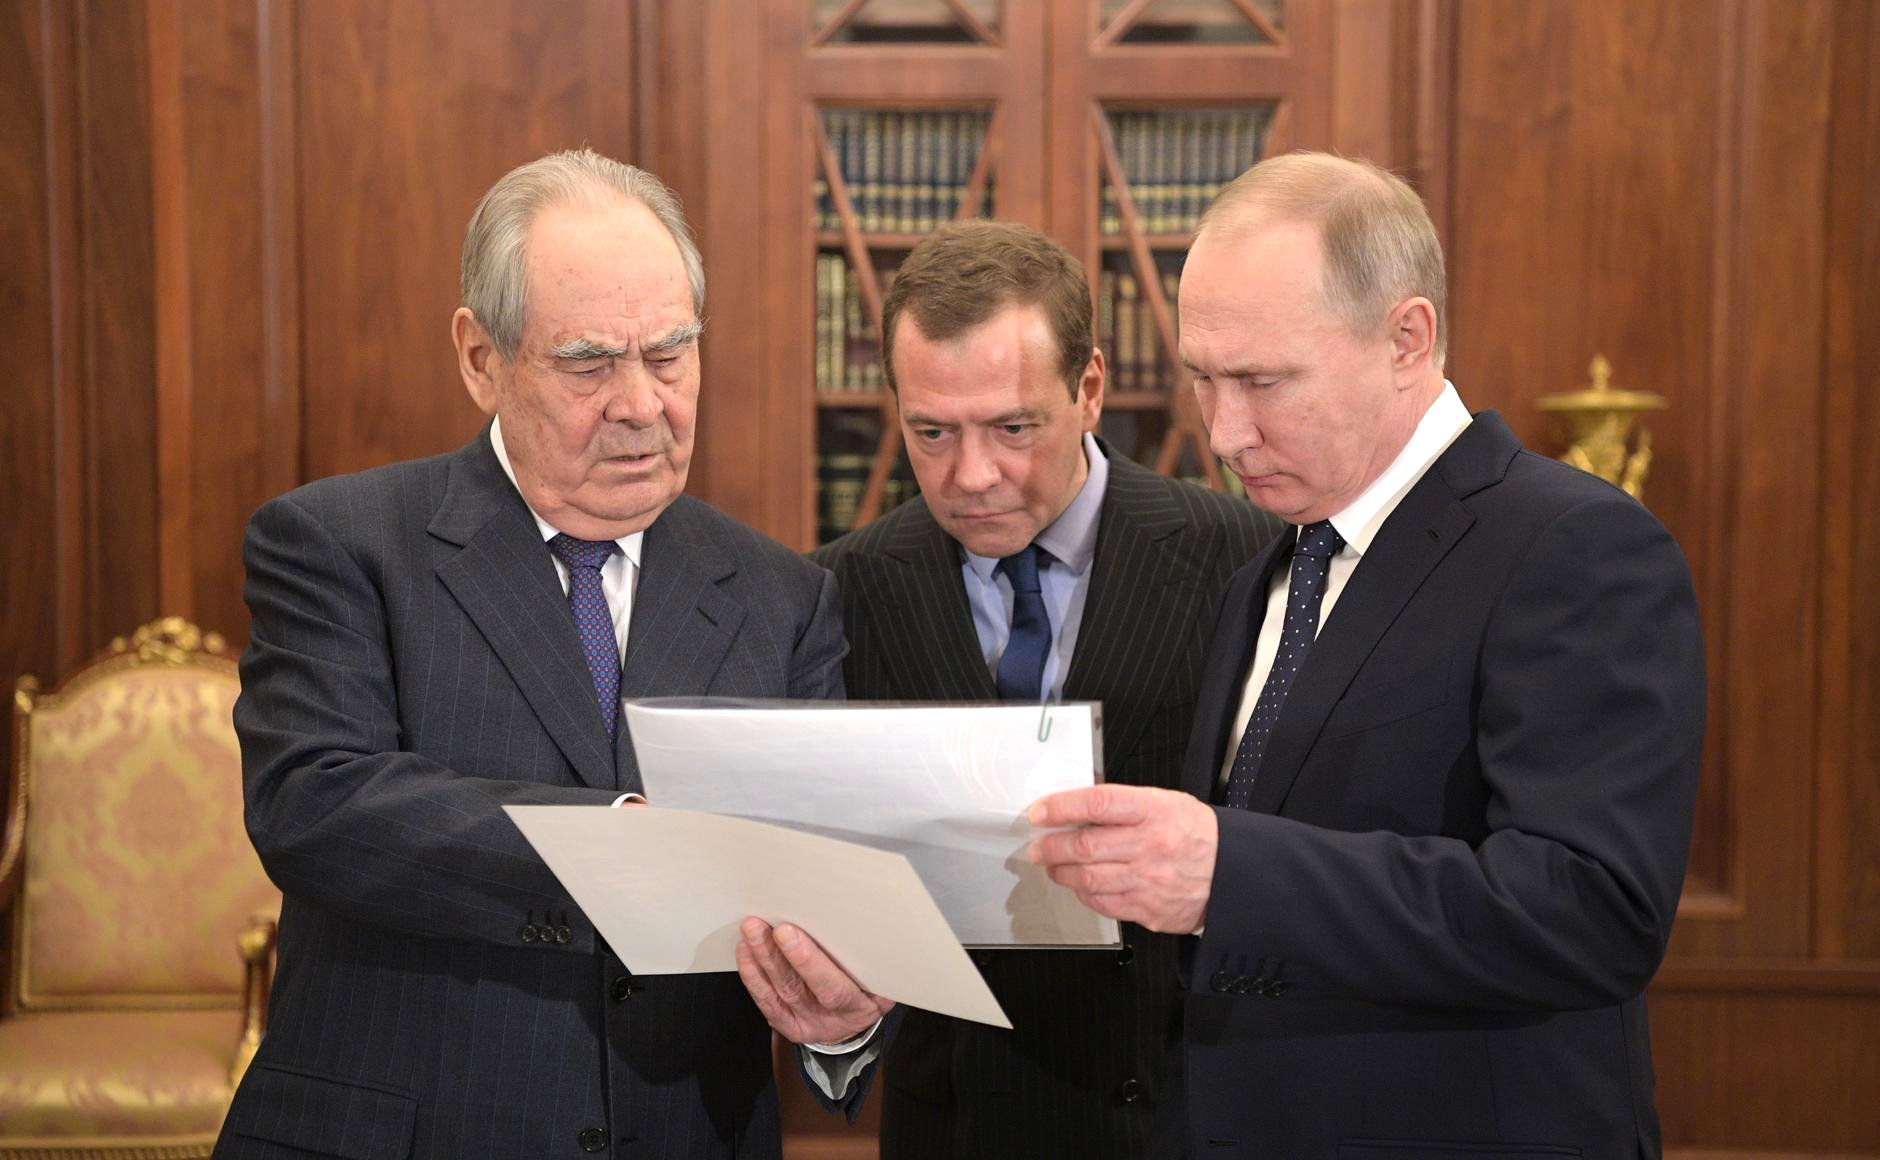 Vladimir Putin and Dmitry Medvedev will take part in the agricultural meeting in the Stavropol region 46